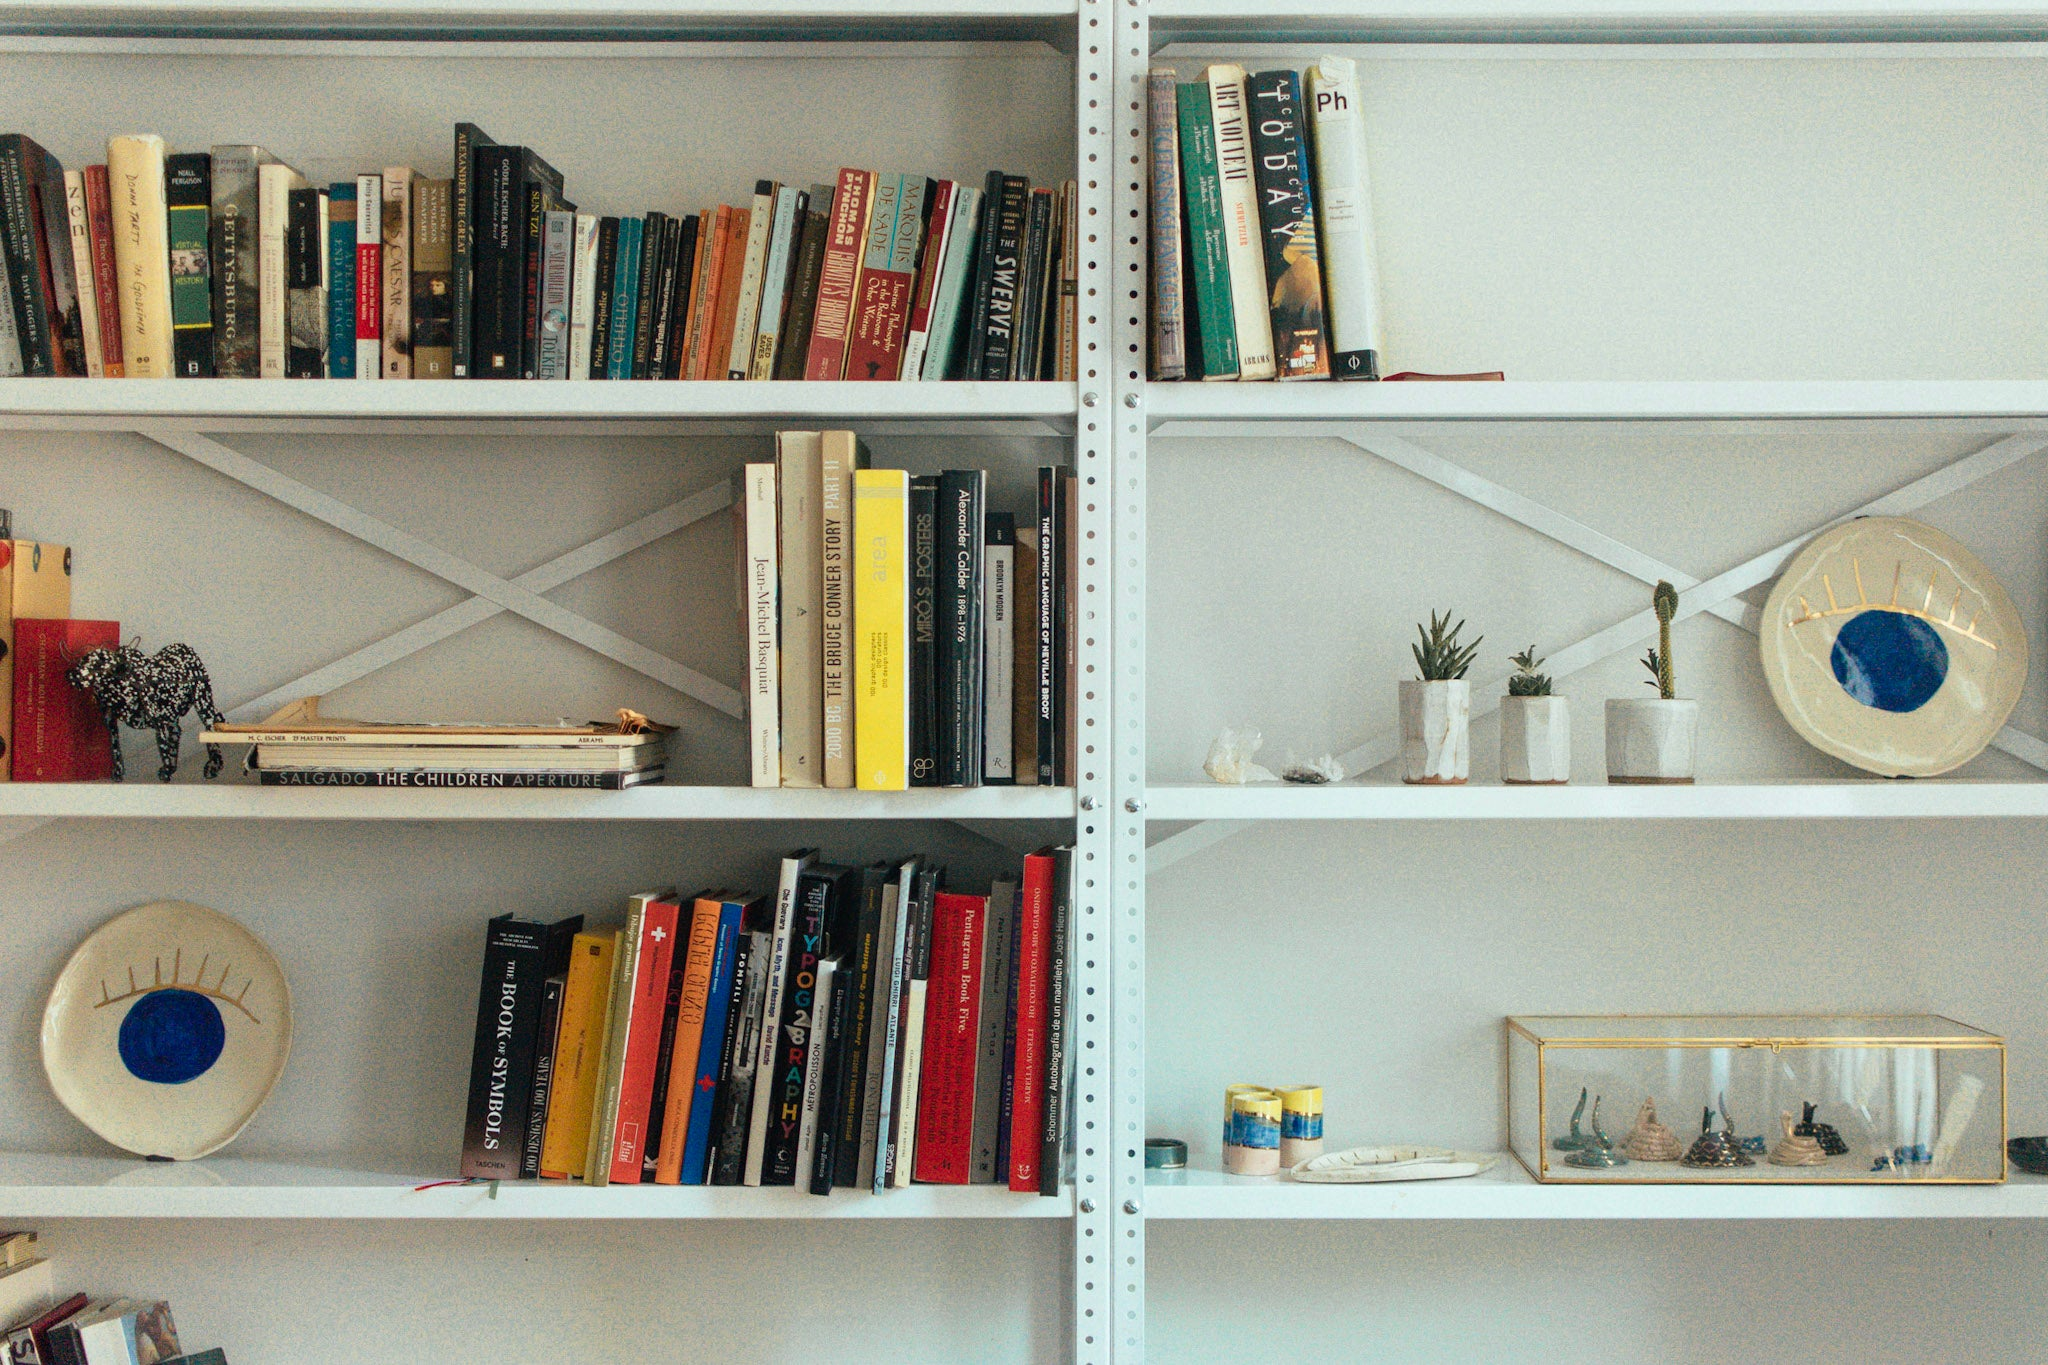 shelf full size image